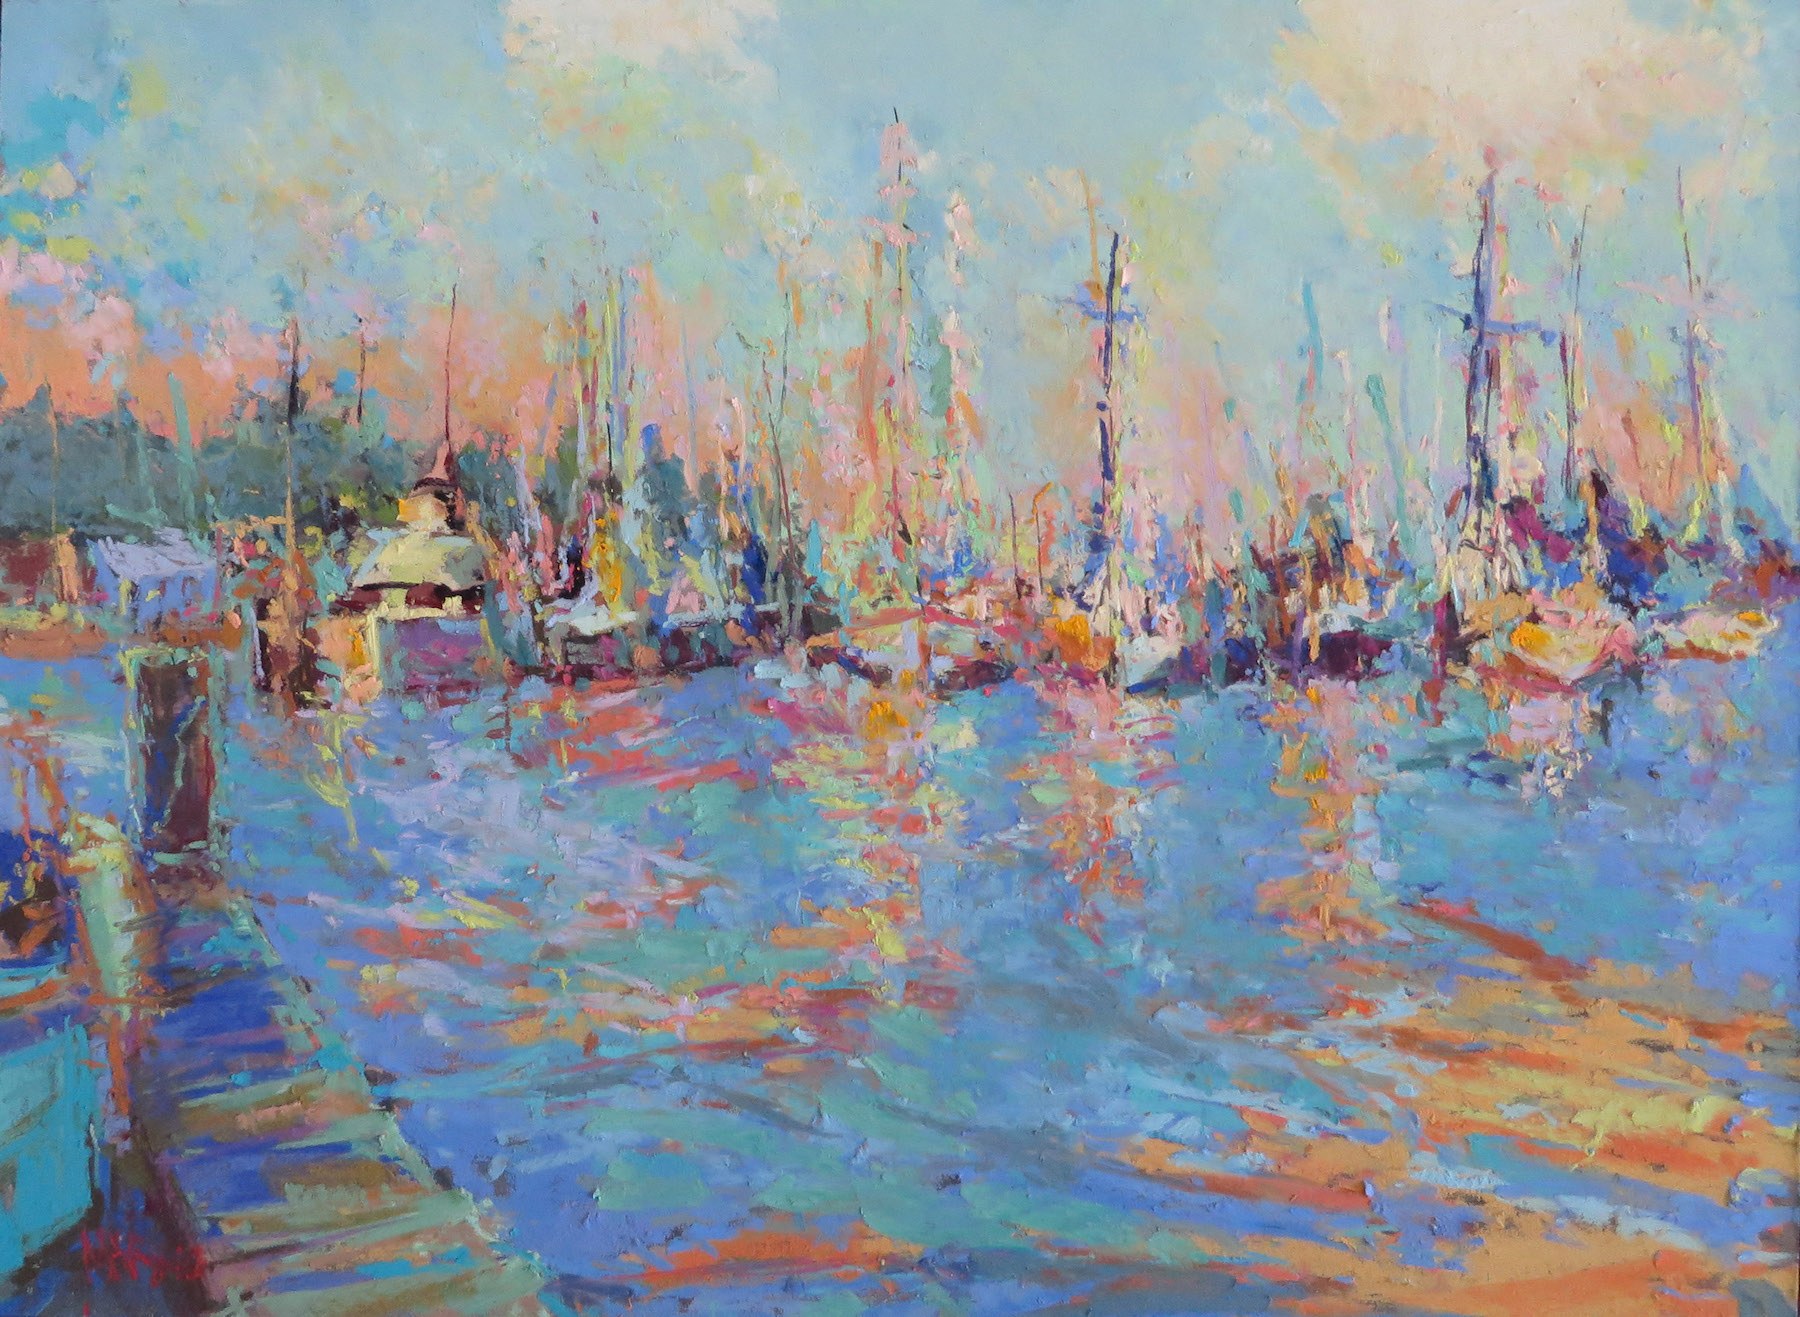 "Maria Marino, Mear Marina-Eastport,"" pastel over watercolor on UART 320 board, 12 x 16 in. Sold. Studio painting of a boatyard in Eastport, MD."